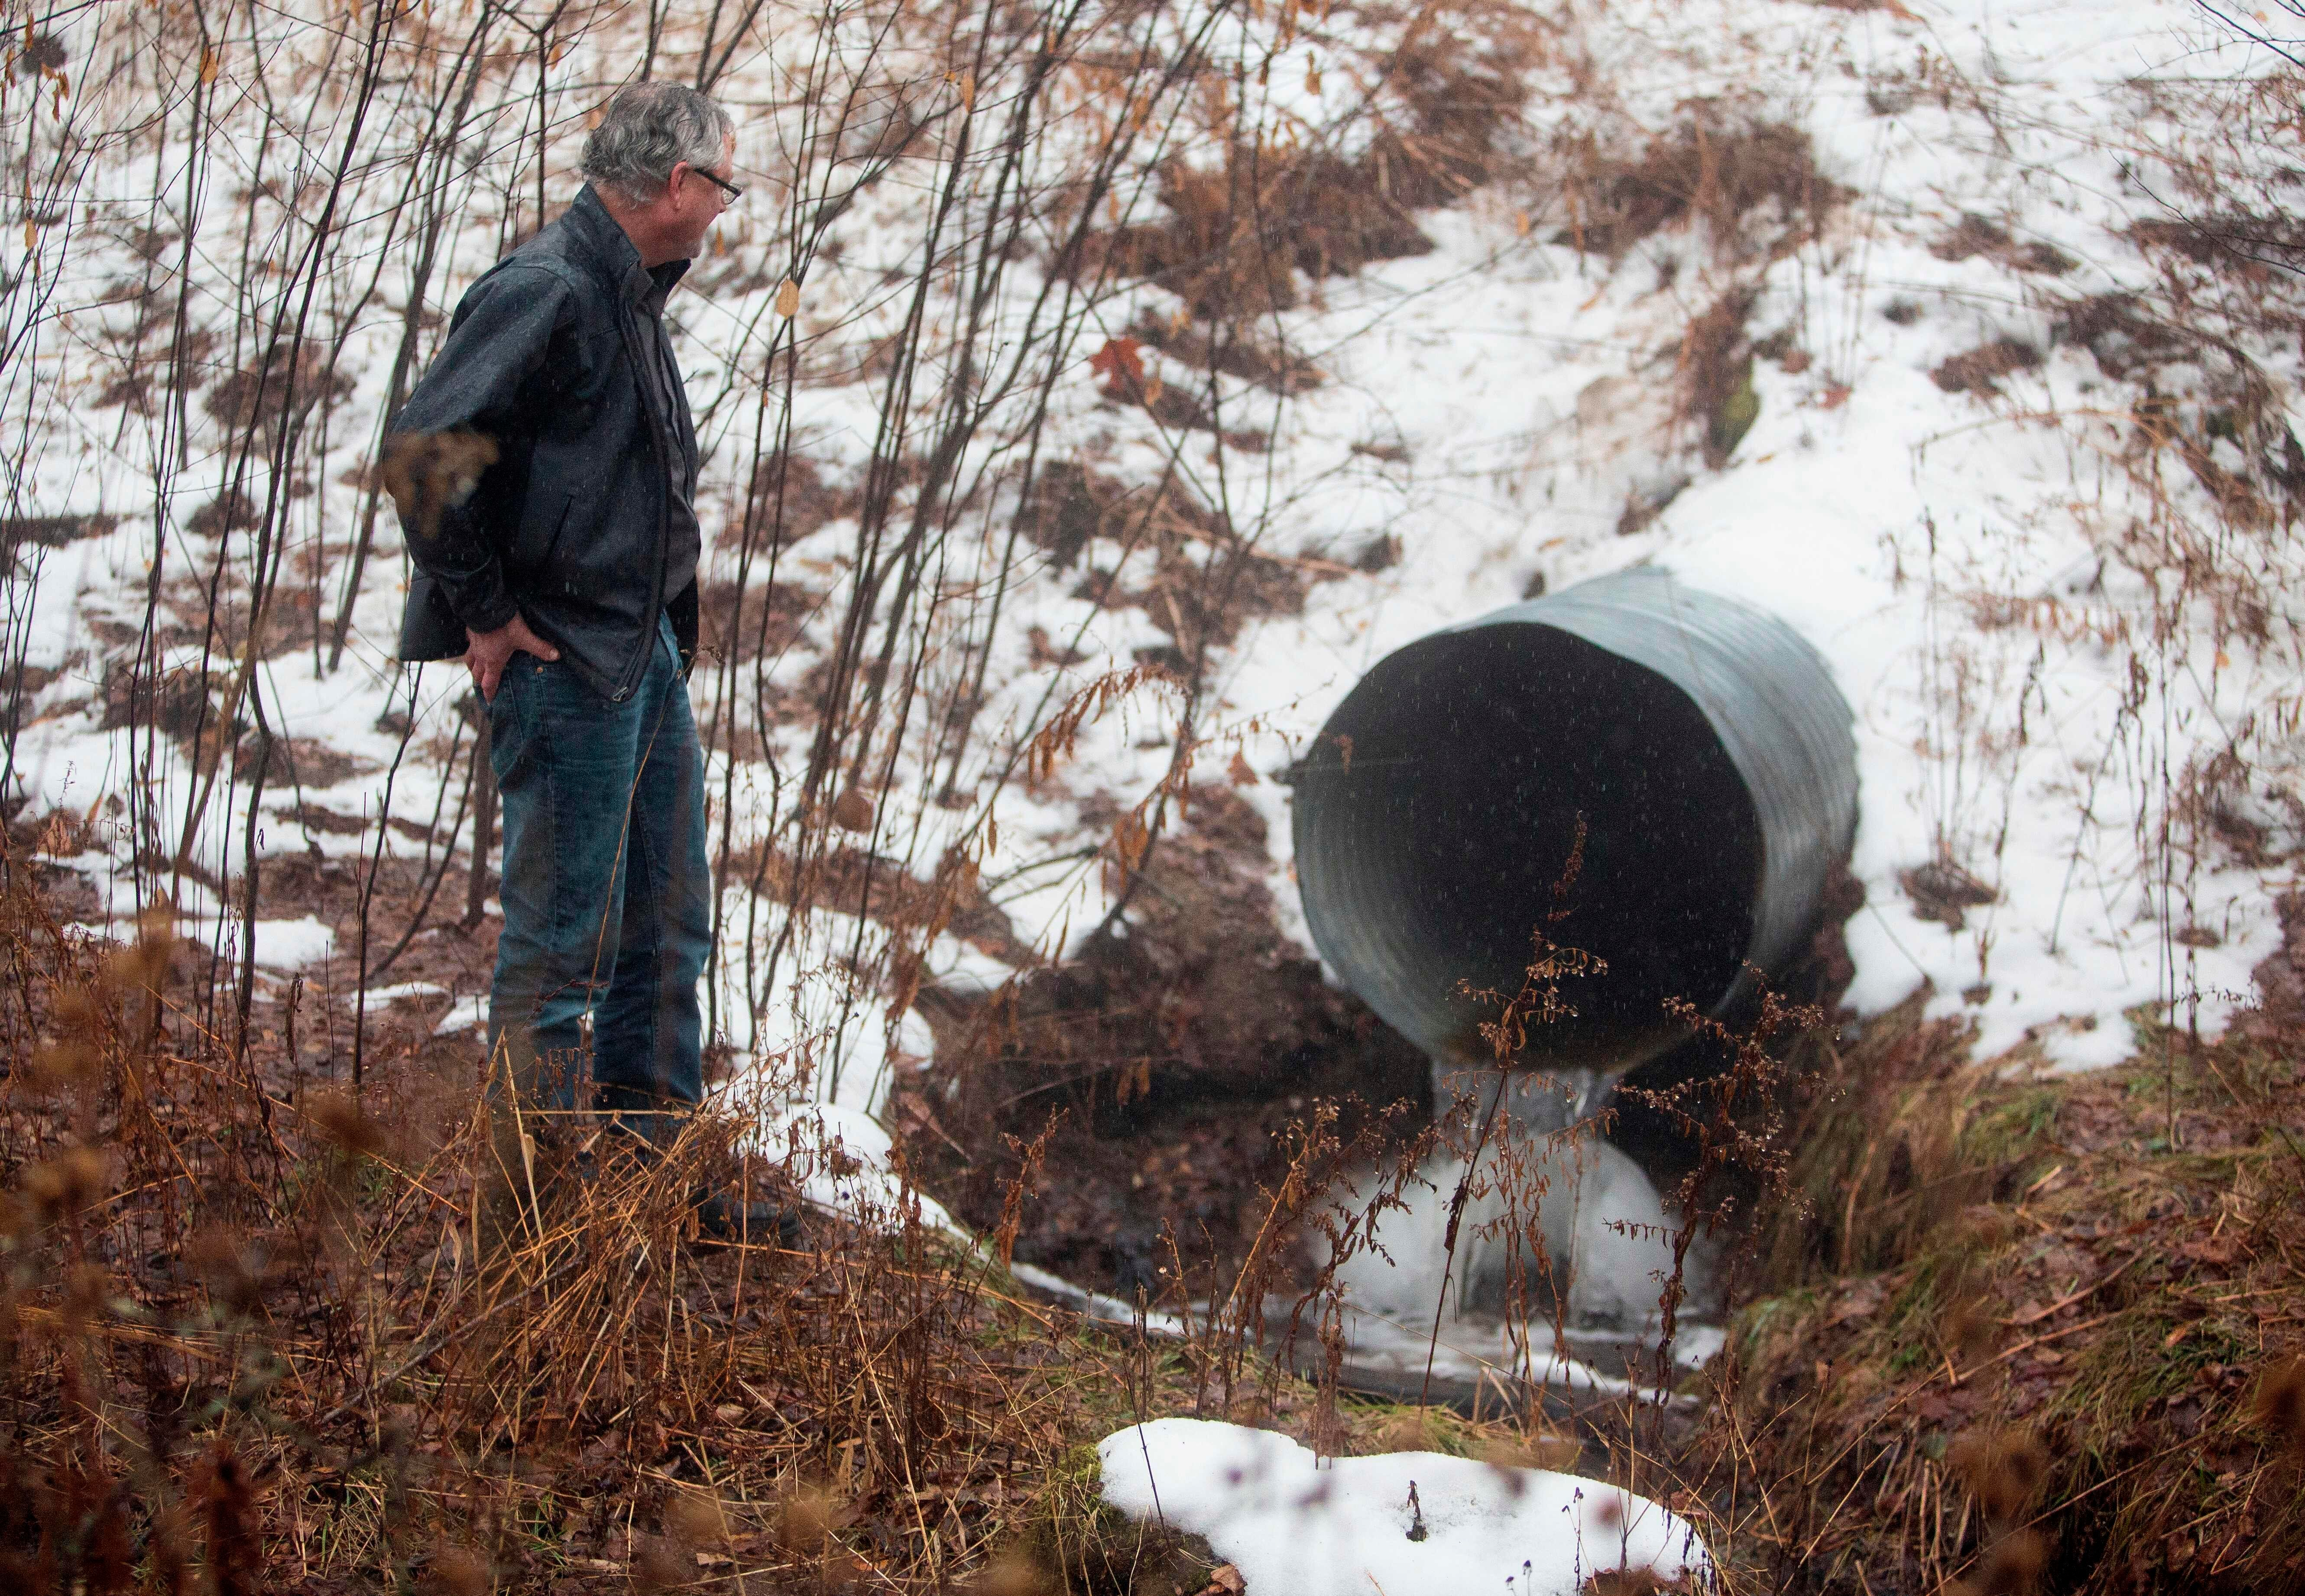 David Huff, chair of the zoning and planning commission for Osceola Township, stands before Chippewa Creek, shown flowing through a culvert where global food conglomerate Nestle is in a battle with critics in the tiny town over its water extraction.